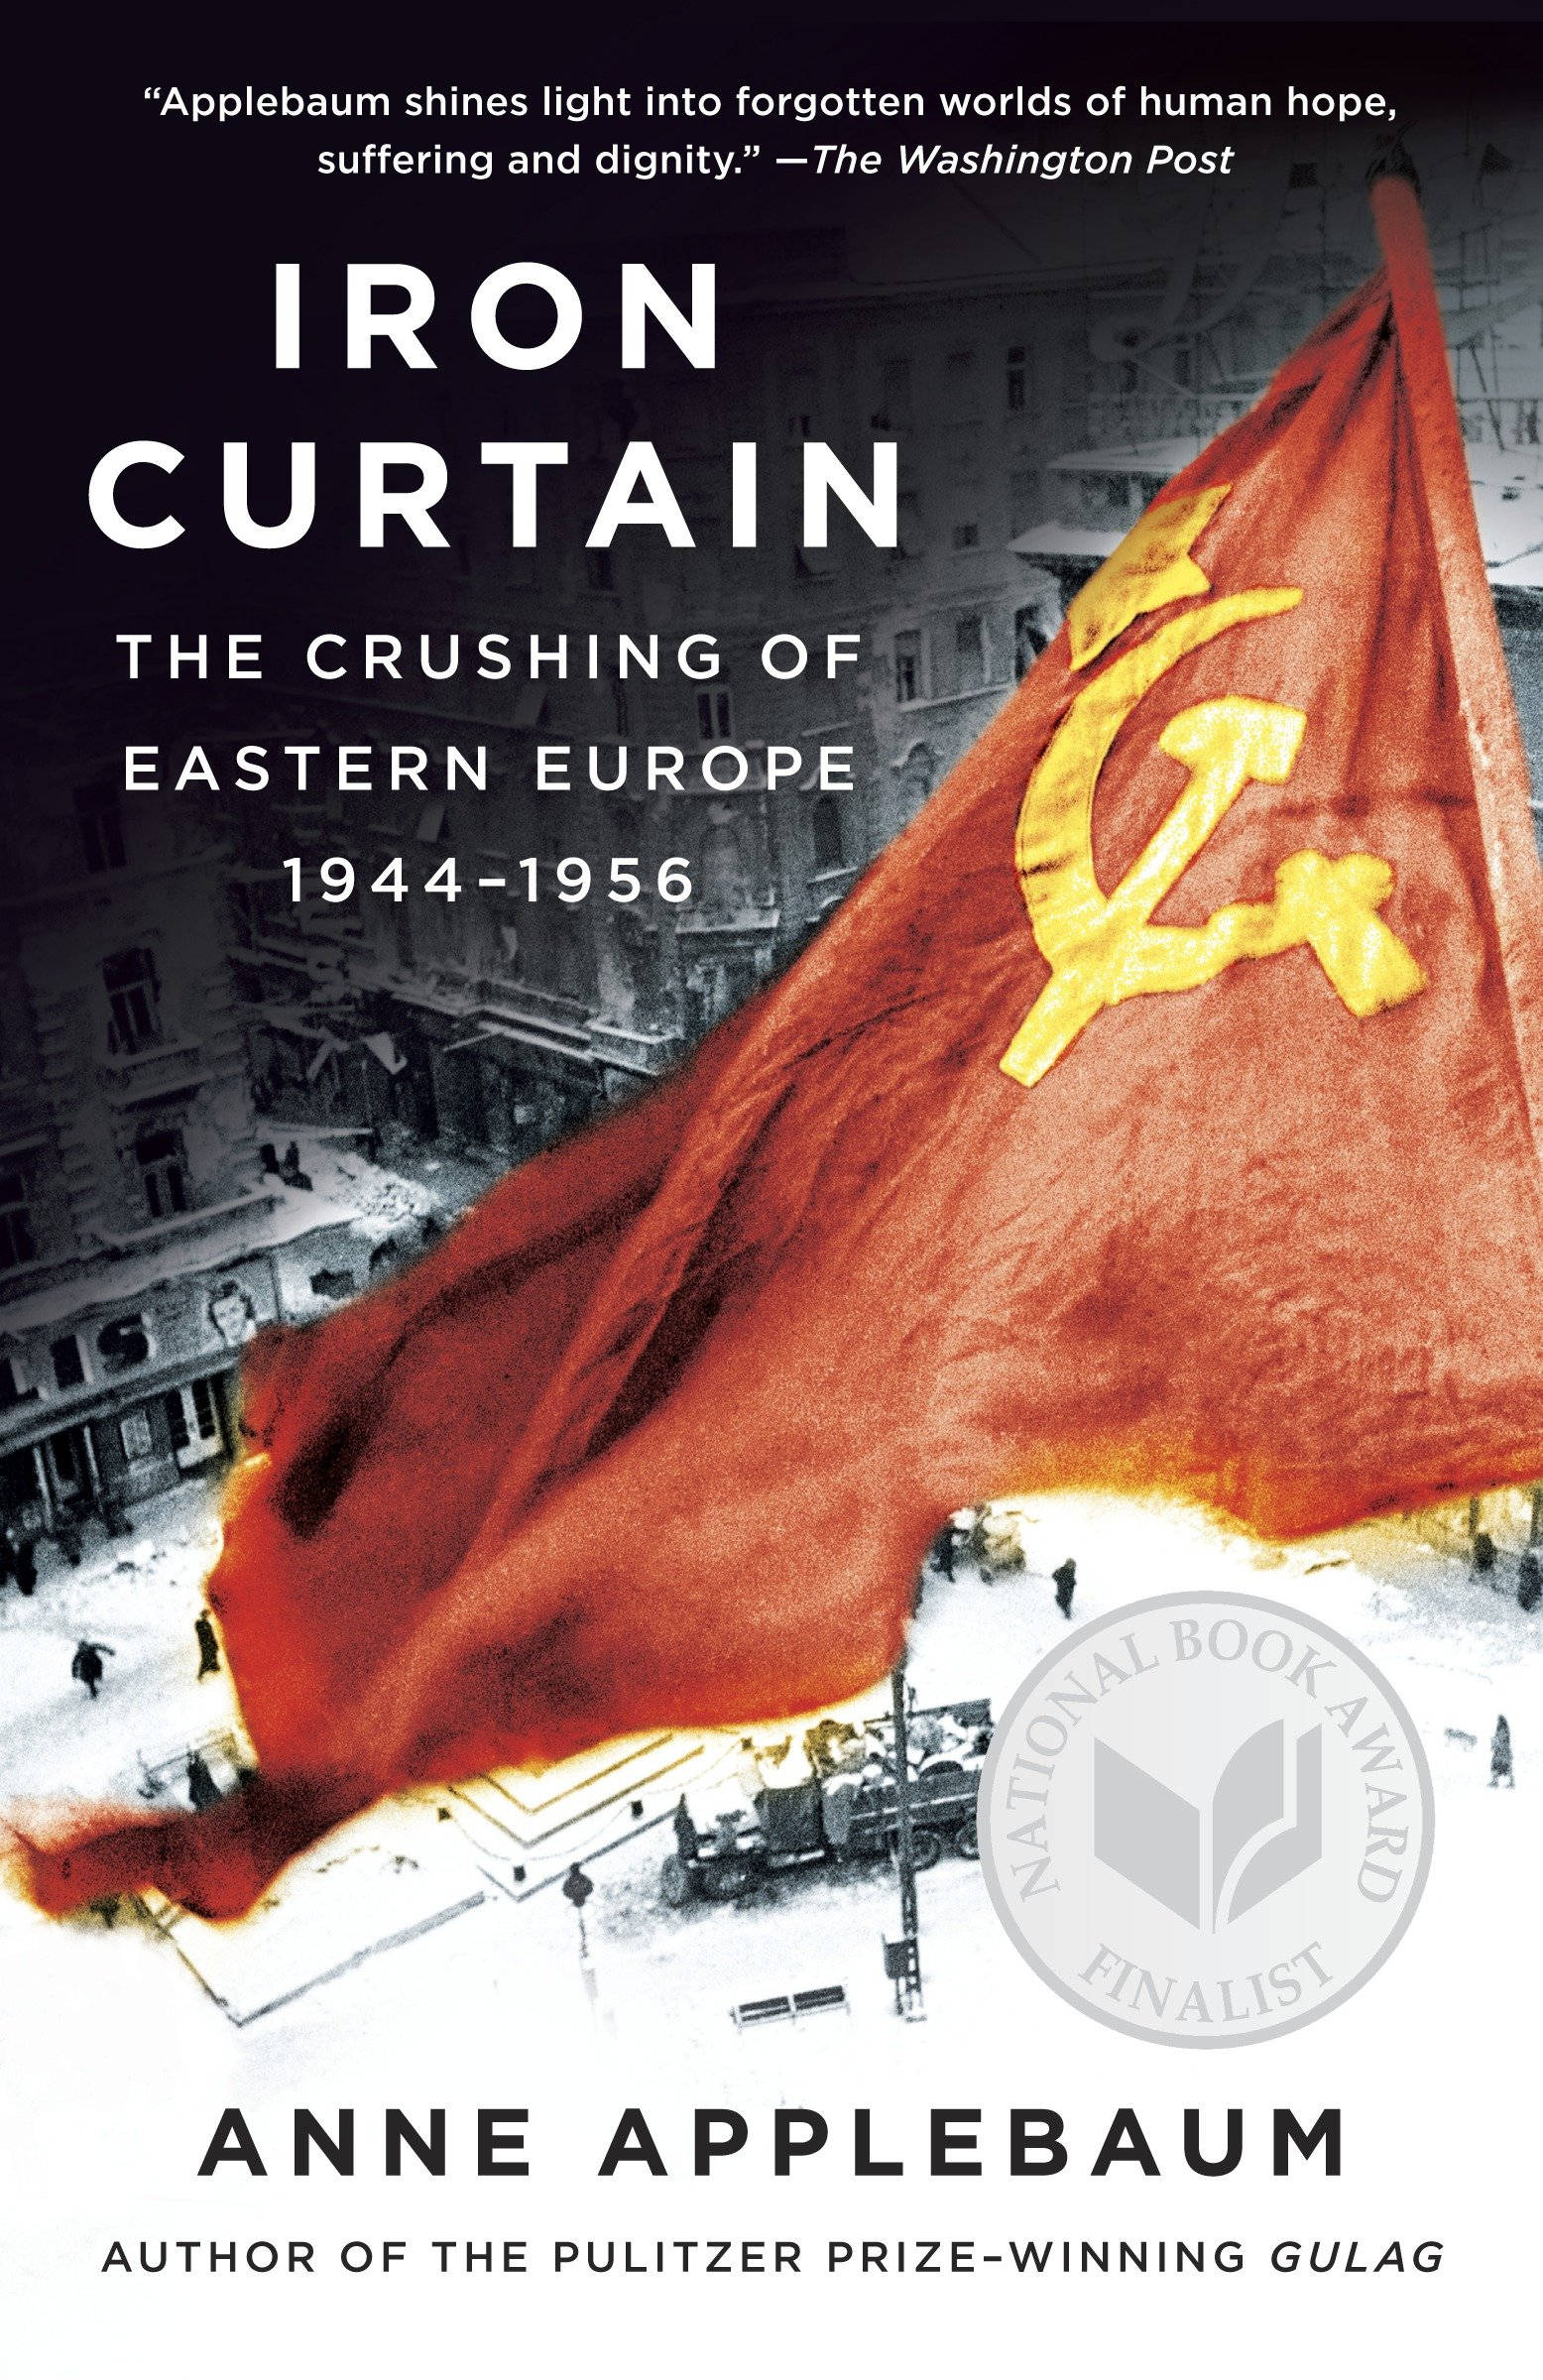 Iron curtain the crushing of Eastern Europe, 1944-1956